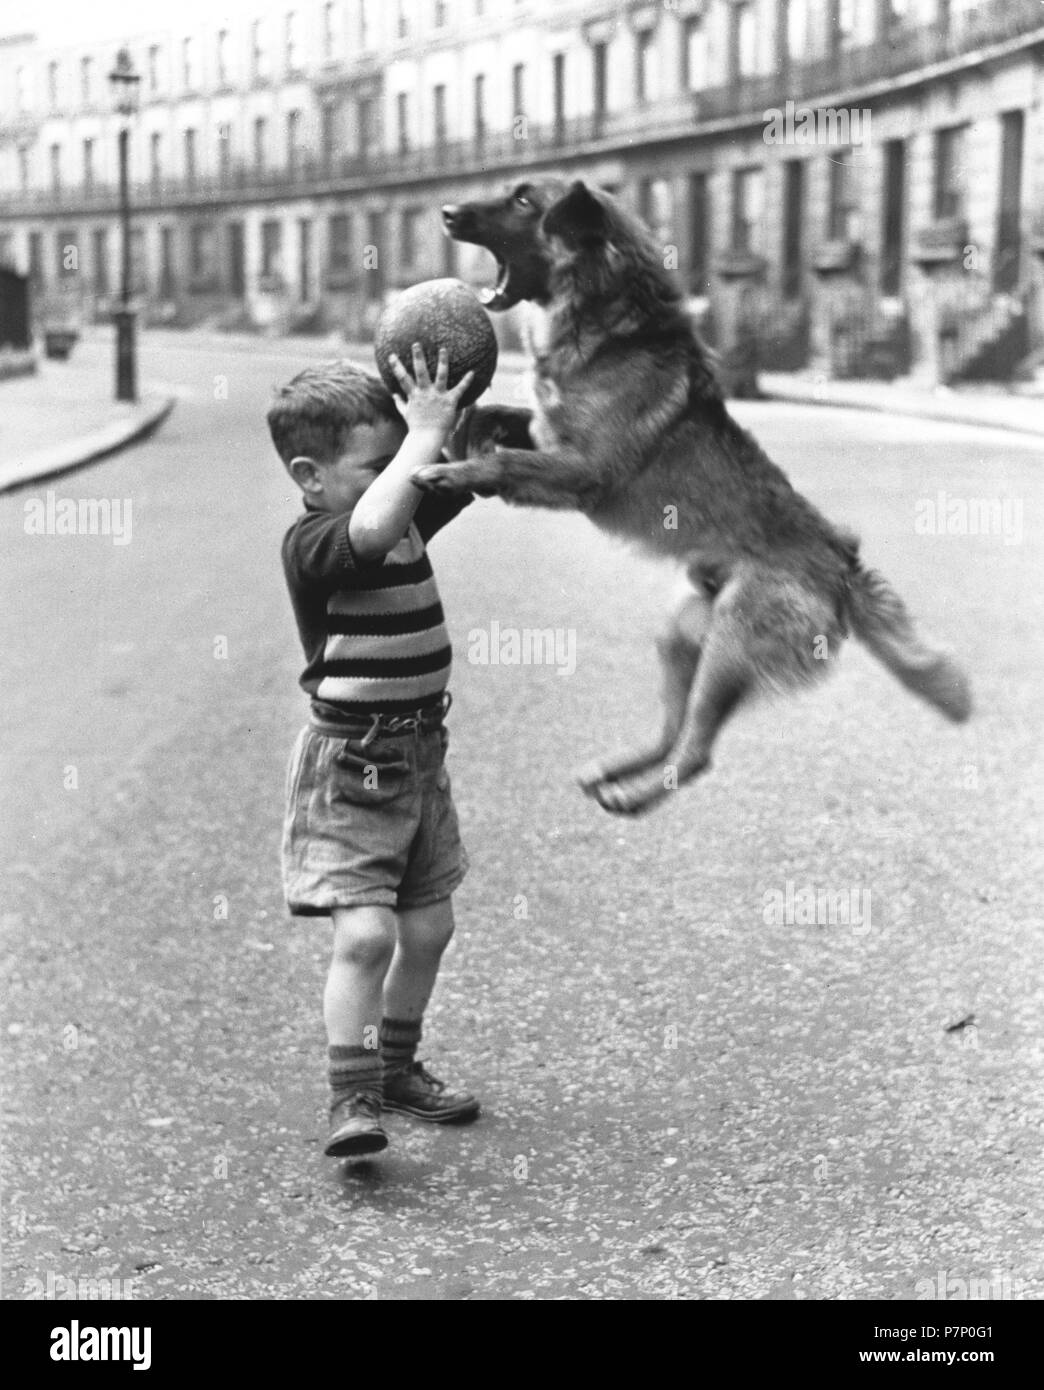 Dog and boy play with a ball, England, Great Britain - Stock Image